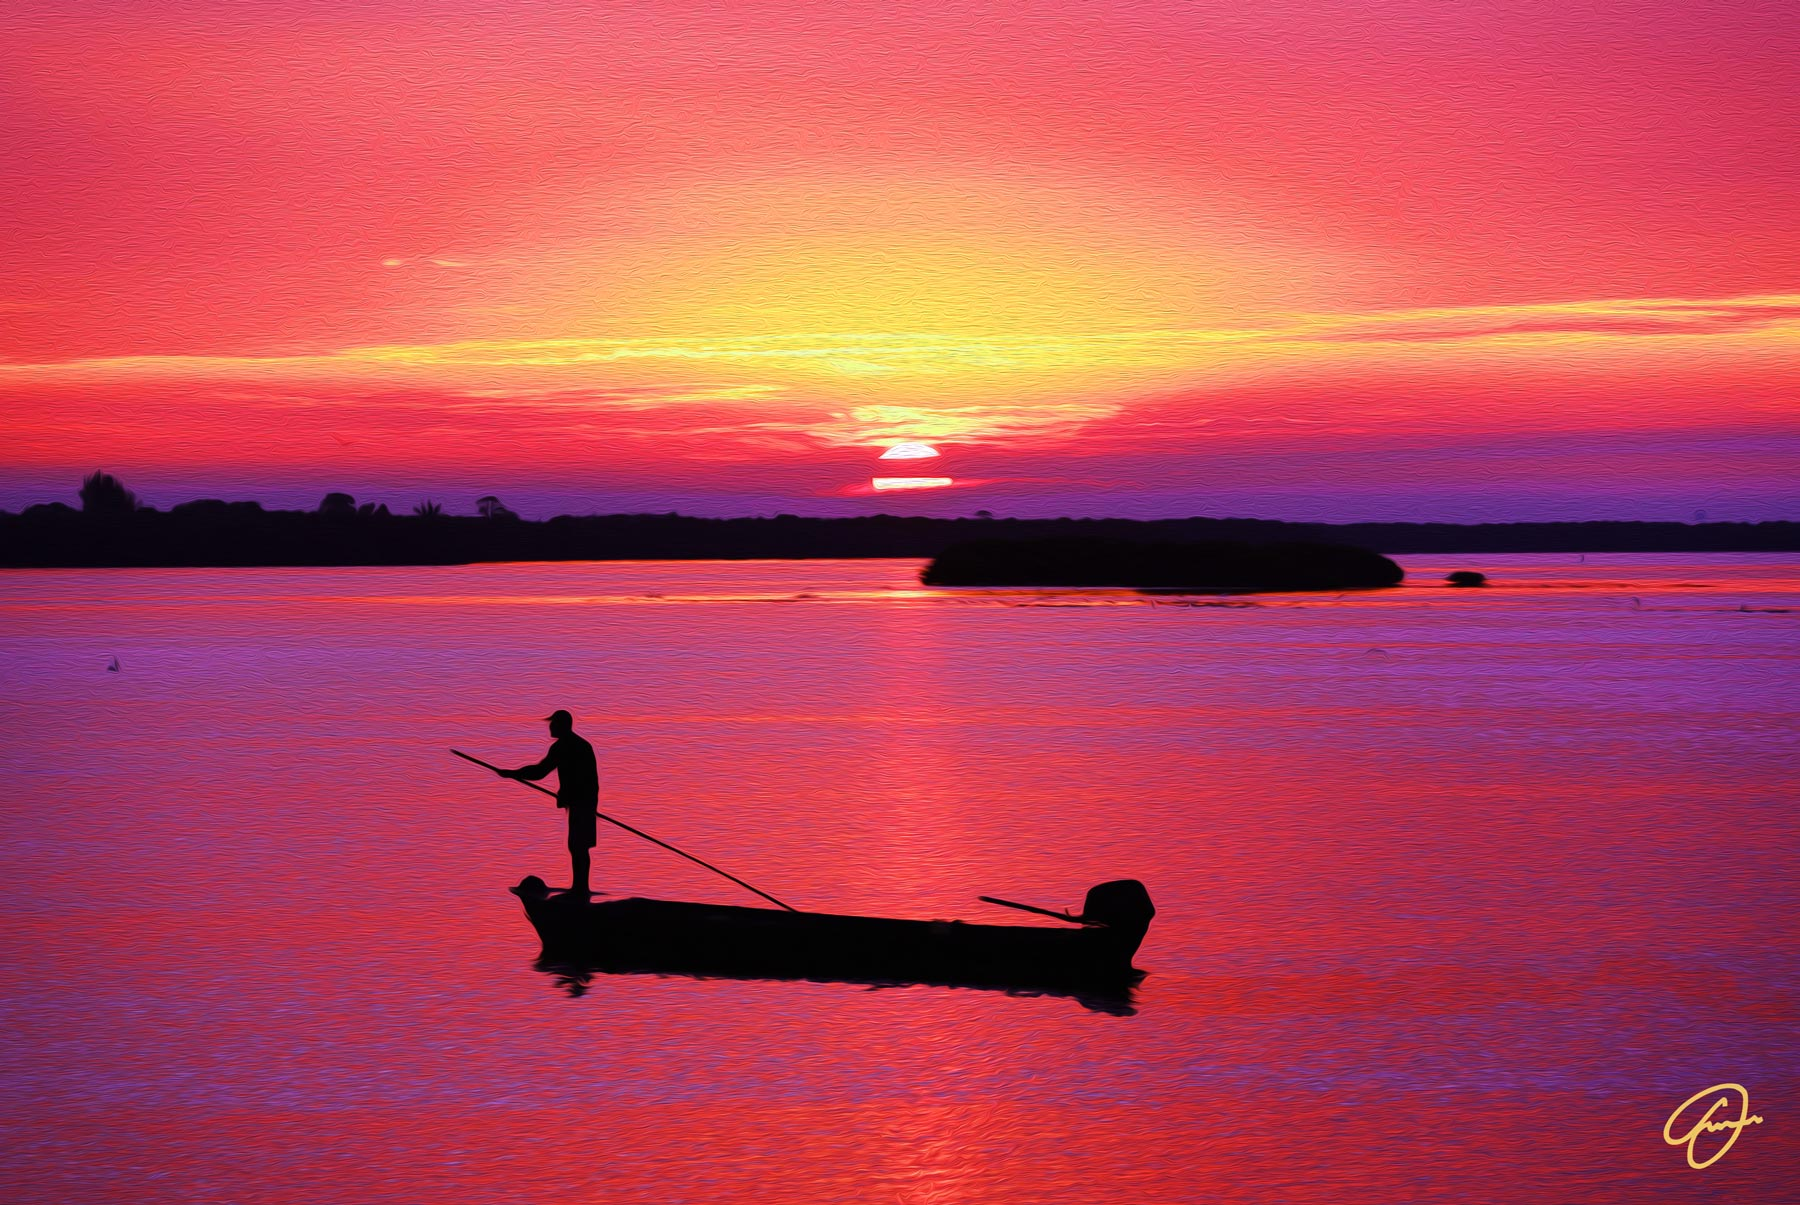 Rowing Towards the Sunrise